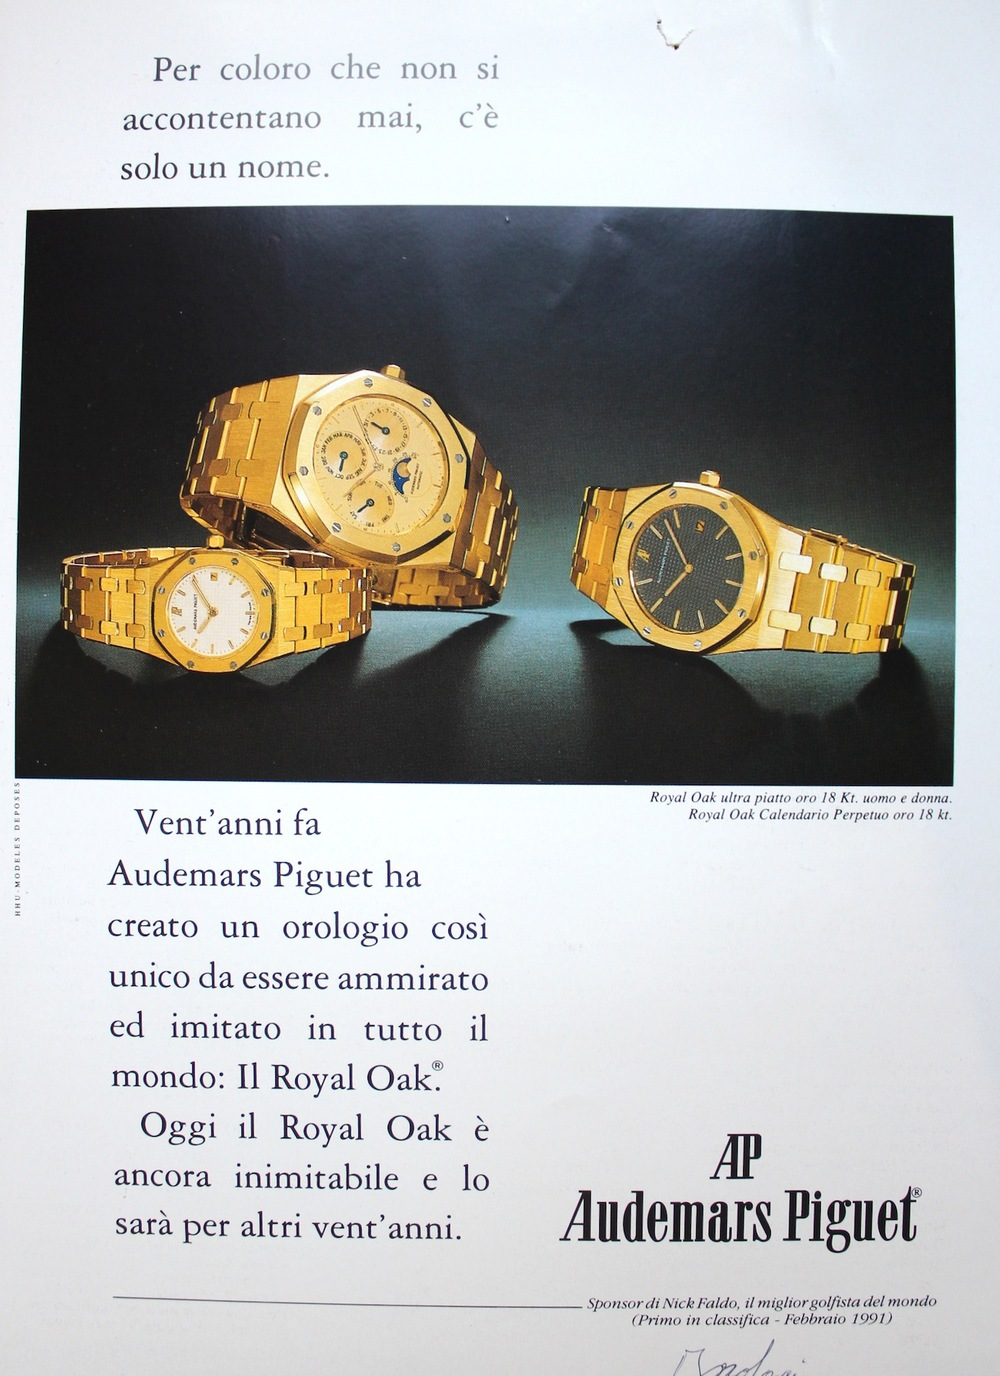 Royal Oak Advertisement circa 1991-1992. Translation of Advertisement in Italian:  For those who are never satisfied, there is only one name. Twenty years ago, Audemars Piguet created a watch so unique to be admired and often imitated all over the world: the Royal Oak. Today, the Royal Oak is still unique and cannot be imitated for another twenty years.